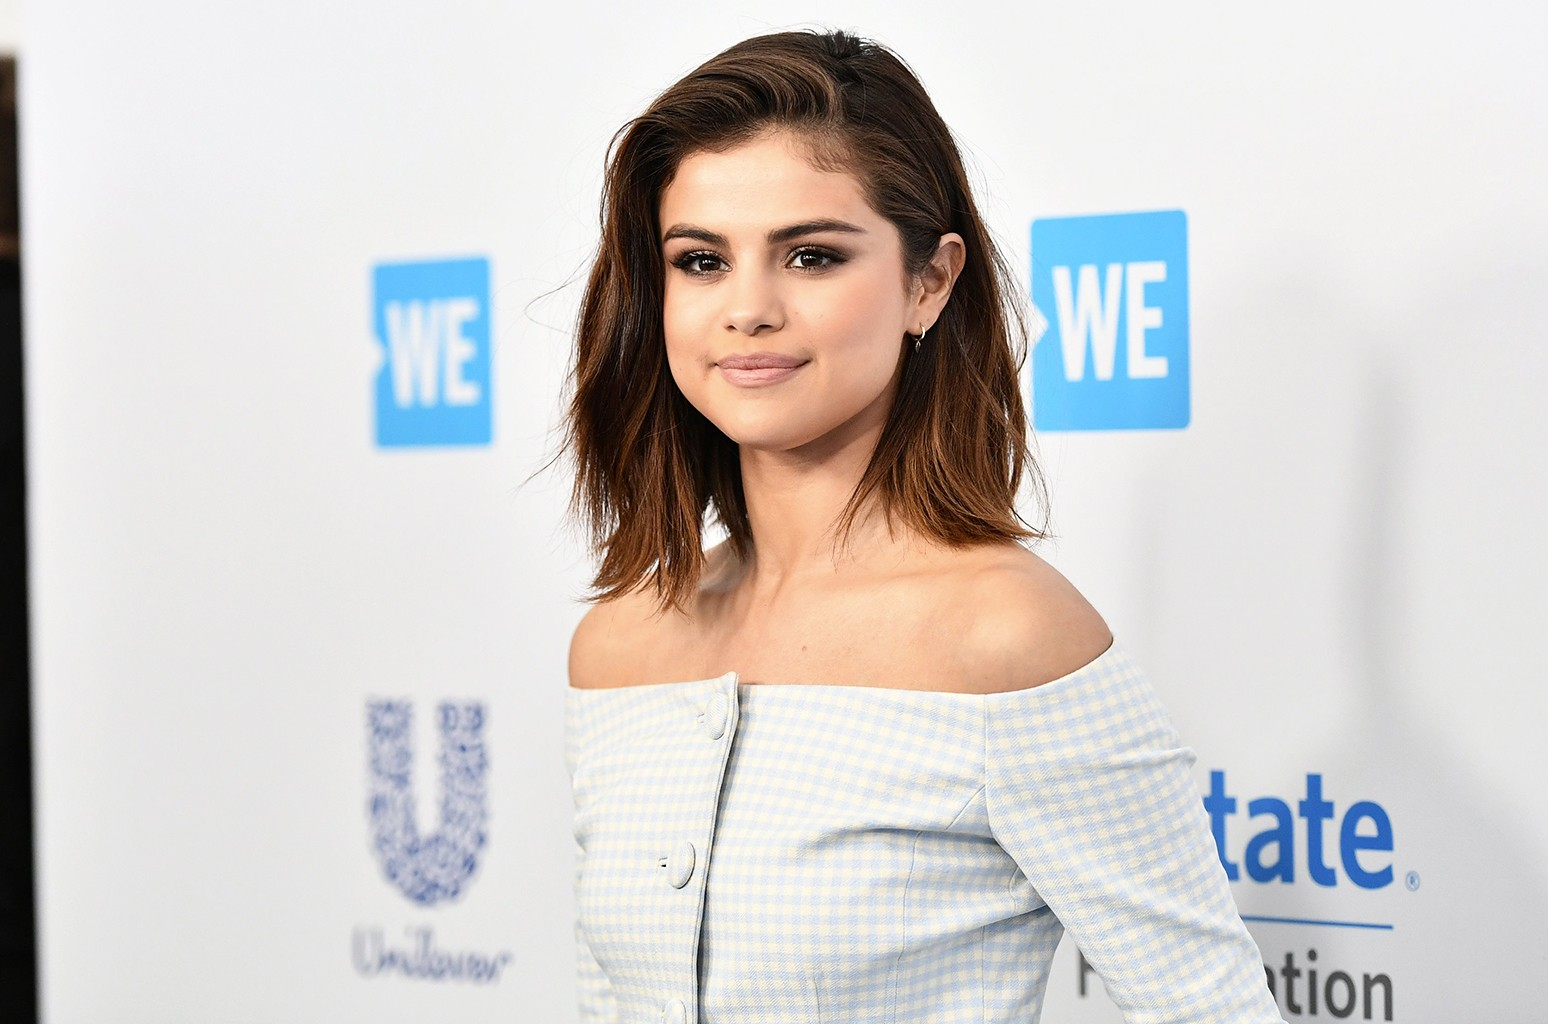 Selena Gomez arrives at WE Day California on April 27, 2017 in Los Angeles.